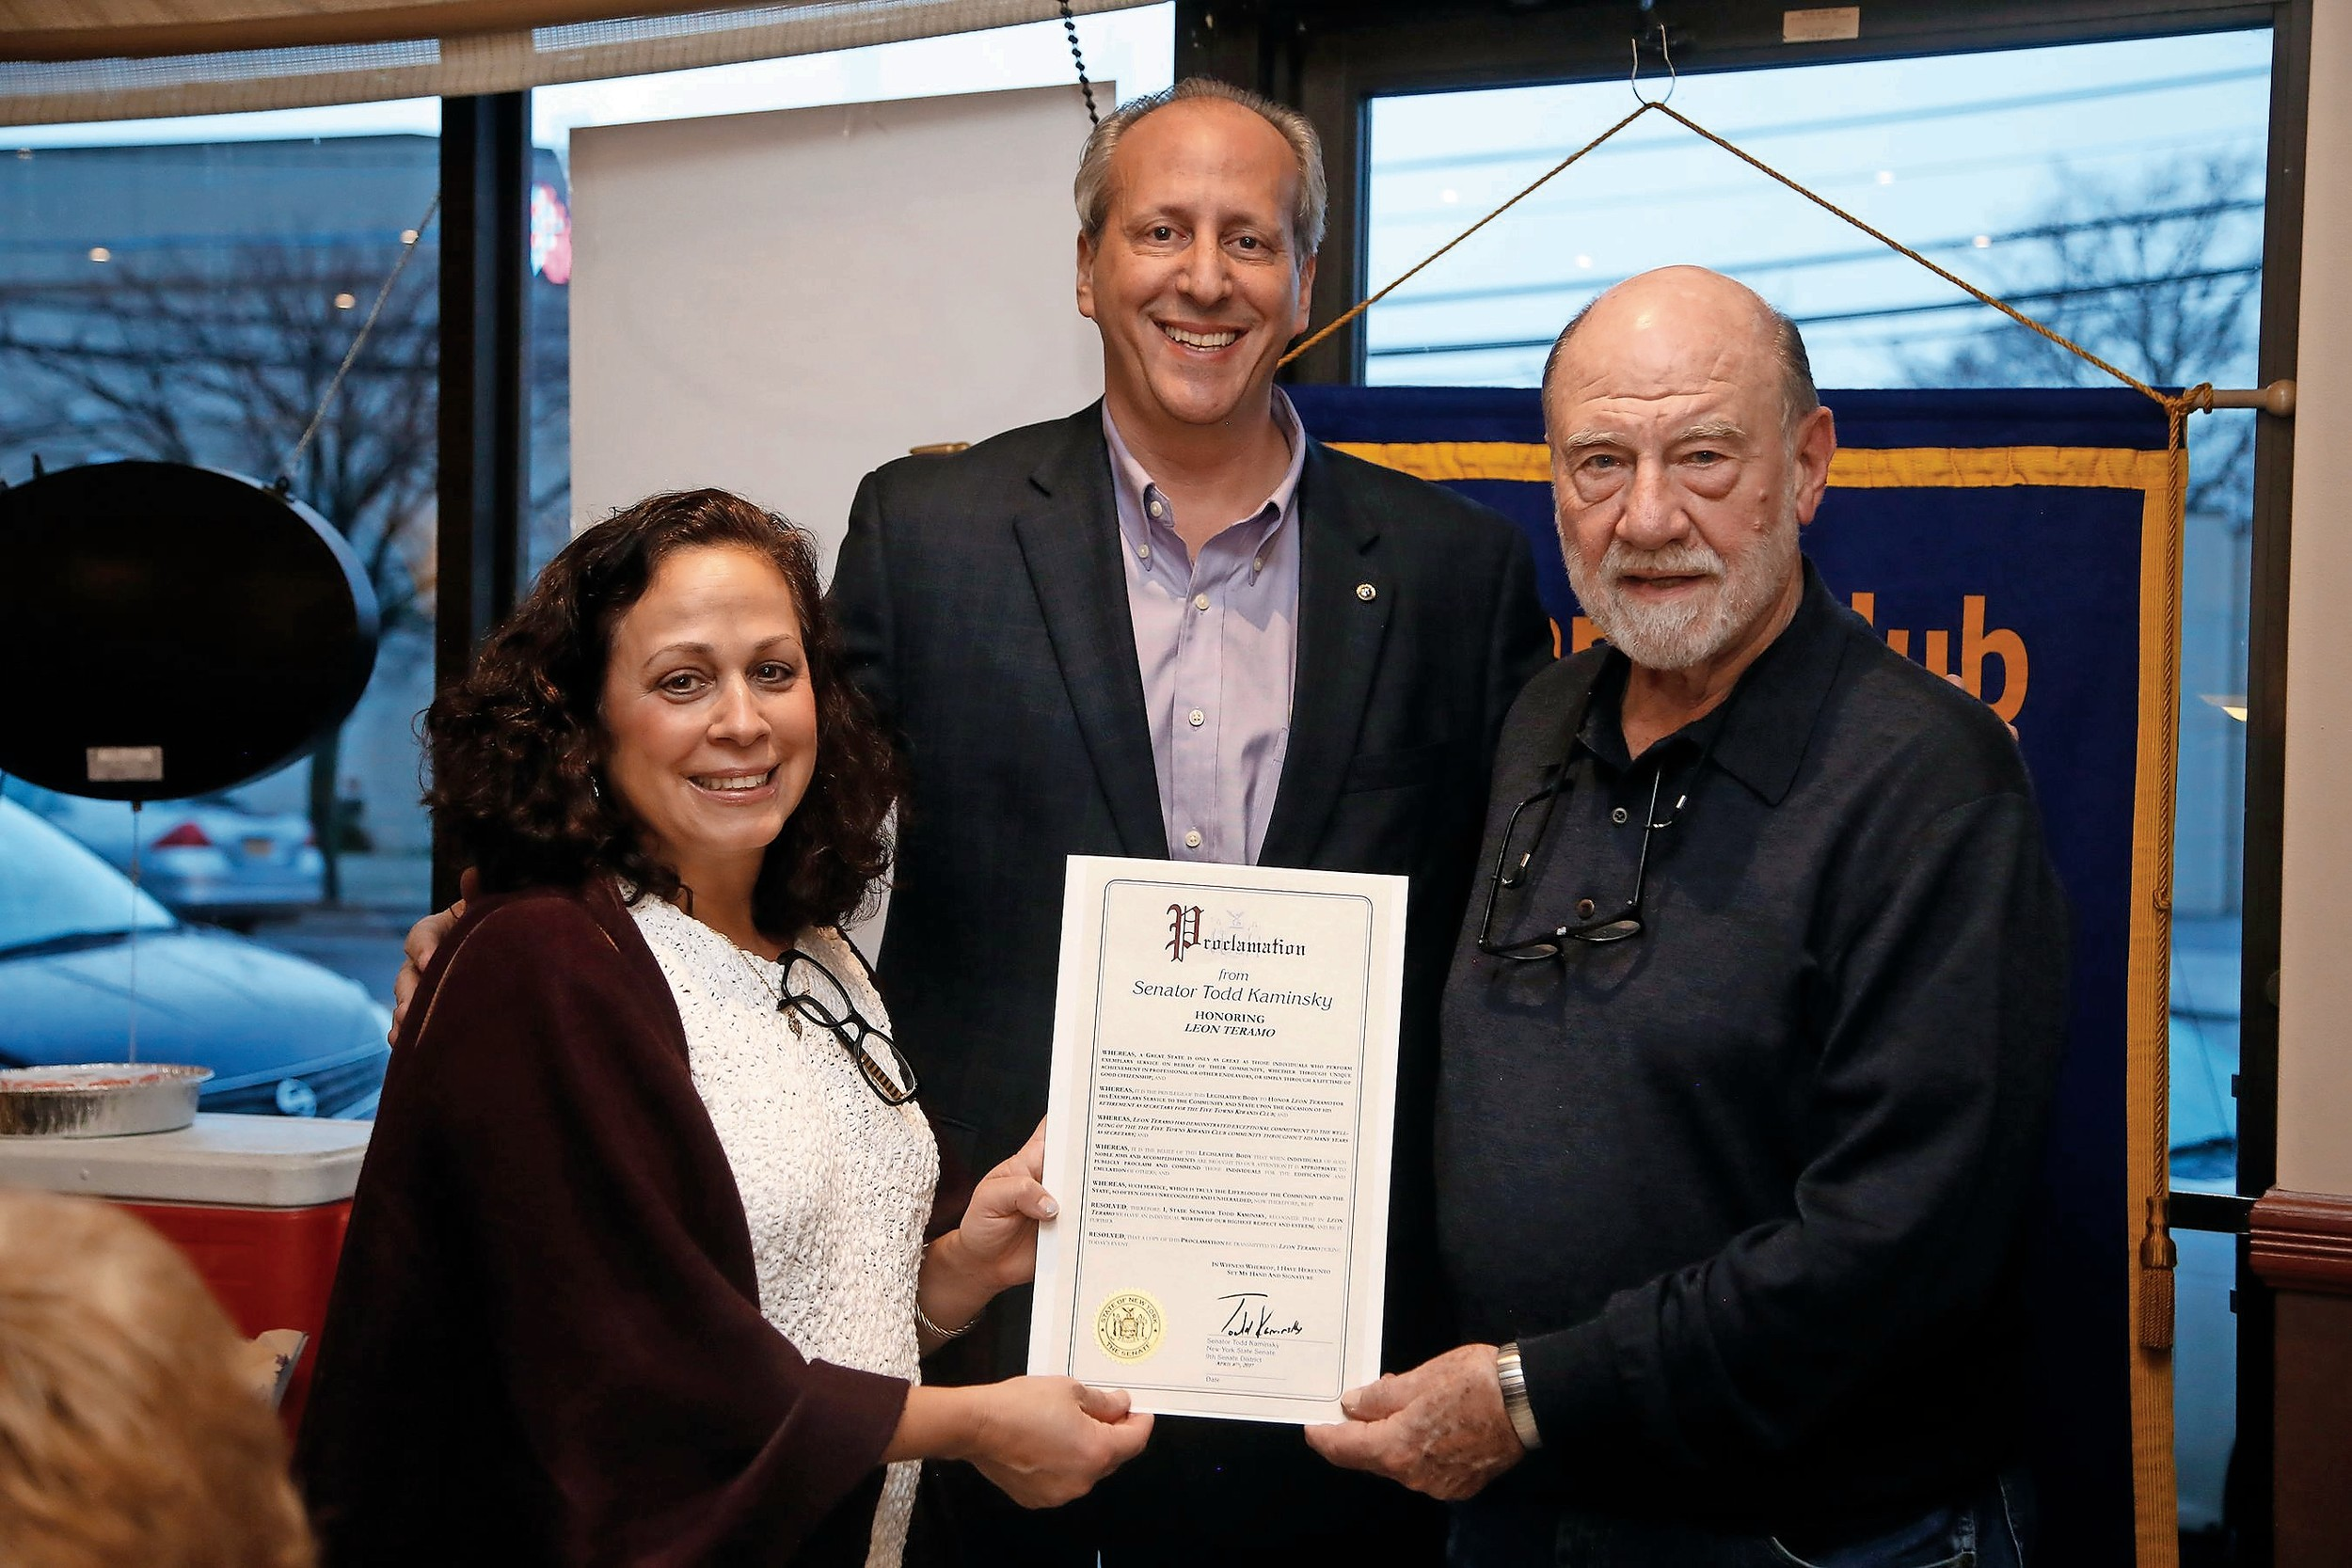 Longtime Kiwanis member Ponte Teramo, right, was given a citation from State Sen. Todd Kaminsky (D-Long Beach) by Ada Cruz. Club President Tom Cohen, center, congratulated Teramo.